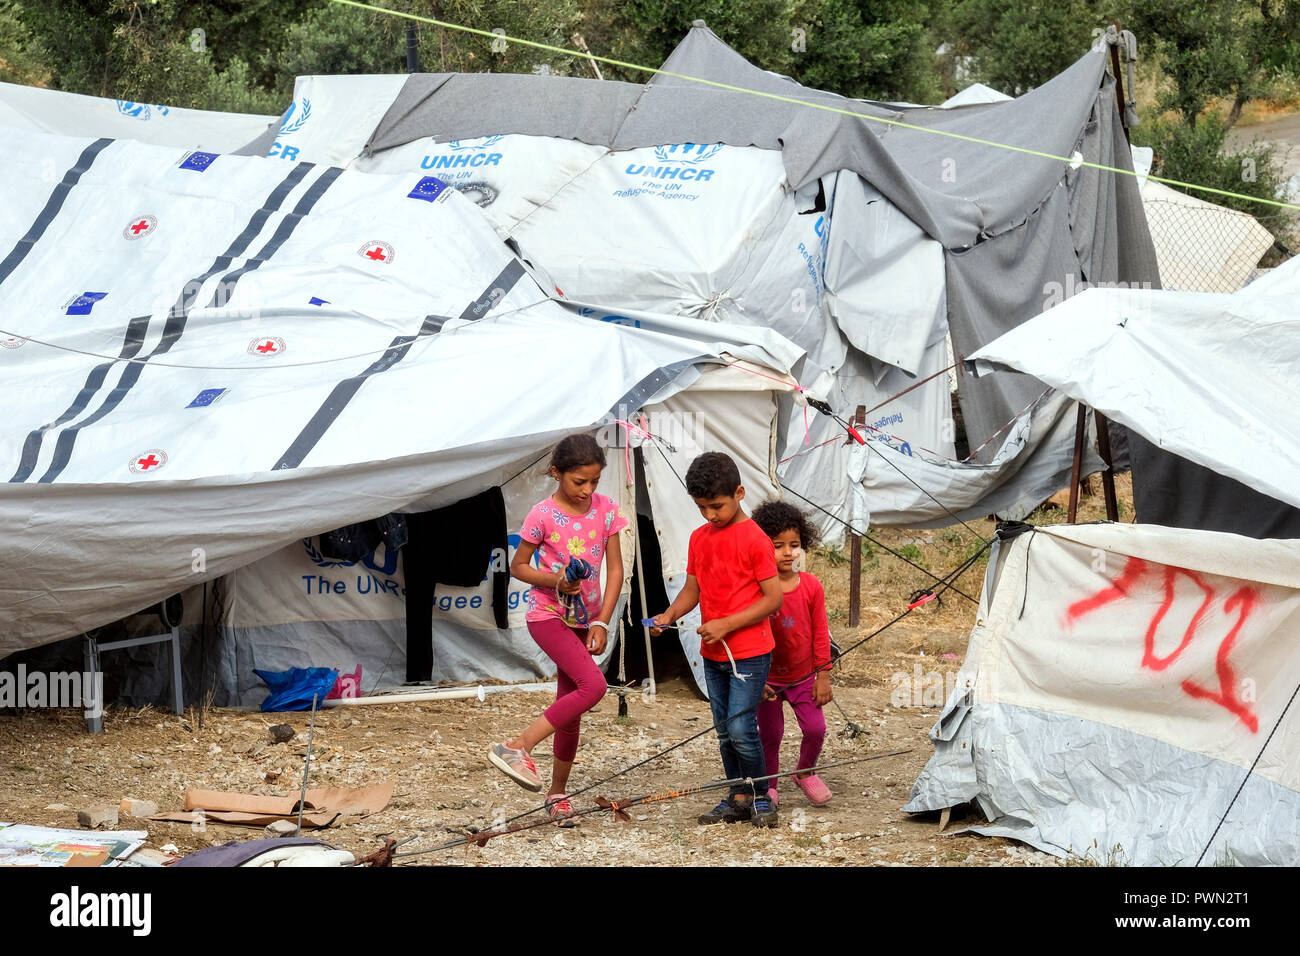 Tent camp next to the camp MORIA-CAMP for refugees who came over by boats from nearby Turkey. Island of Lesbos, Greece, May 2018 - Stock Image